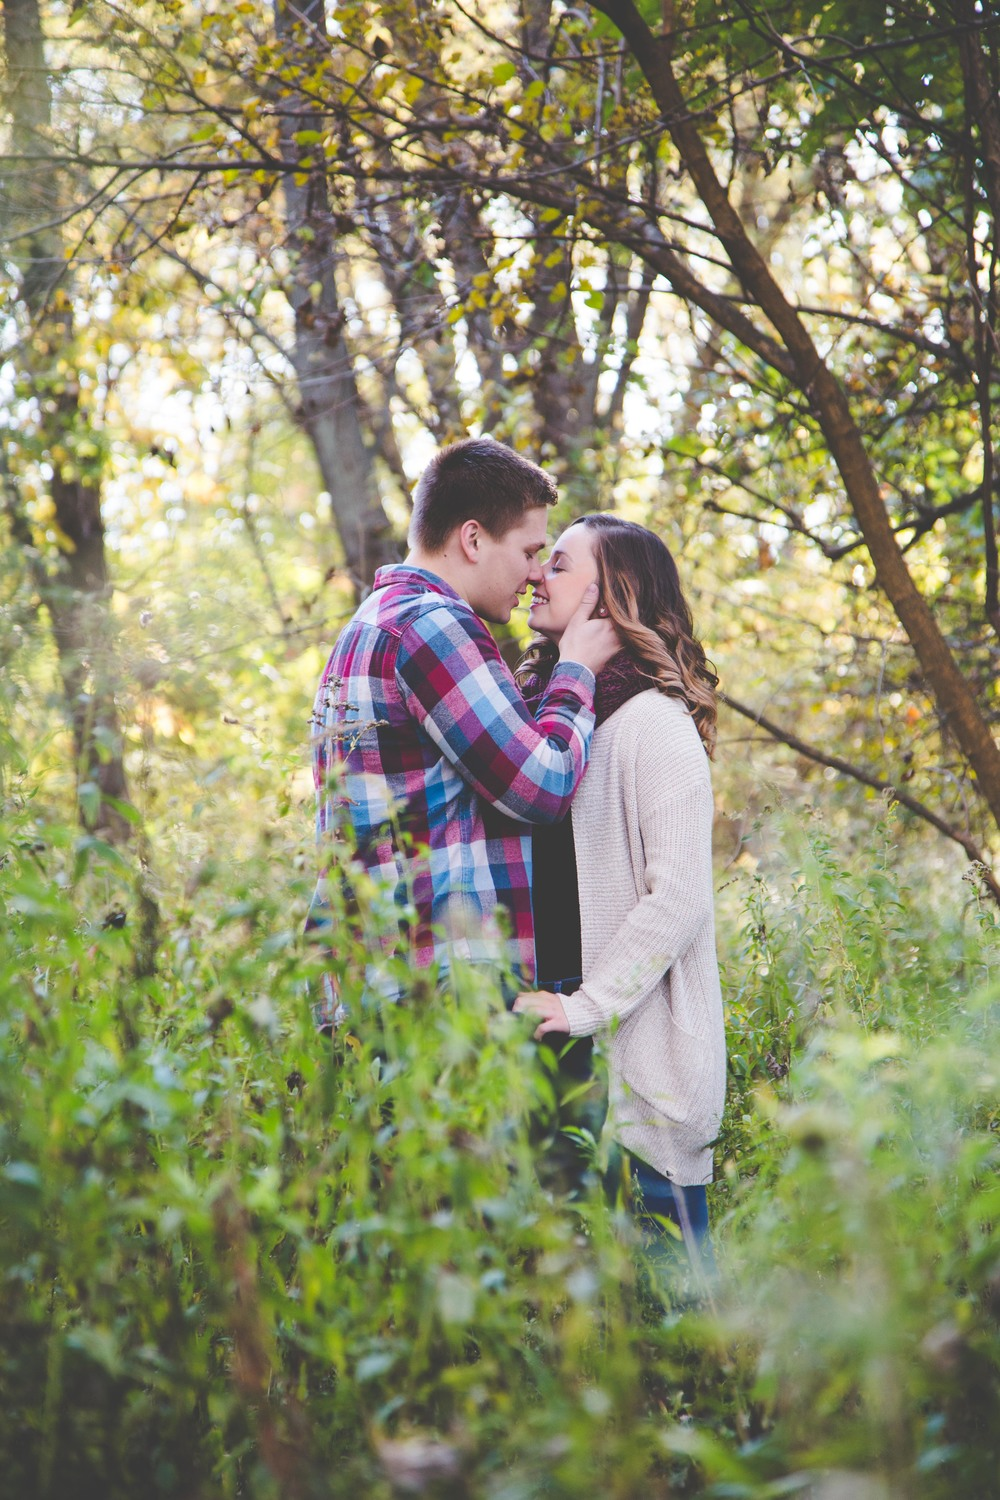 2015 Nicole and Curt smallAlexandriaPhotography0M4A0888.jpg